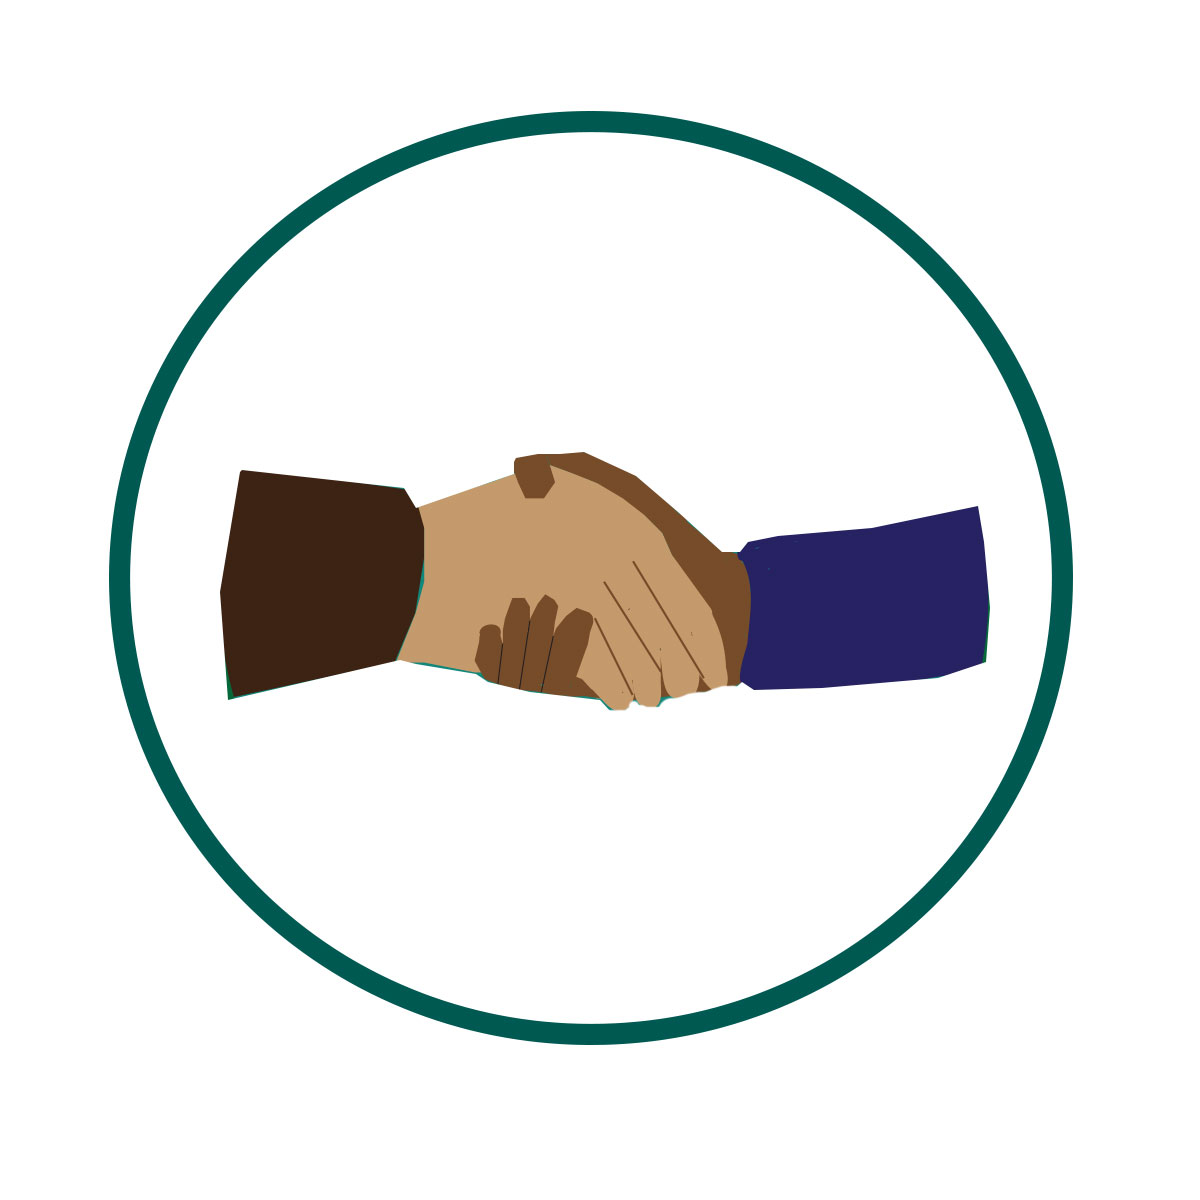 image of a hand shake with a green circle around them